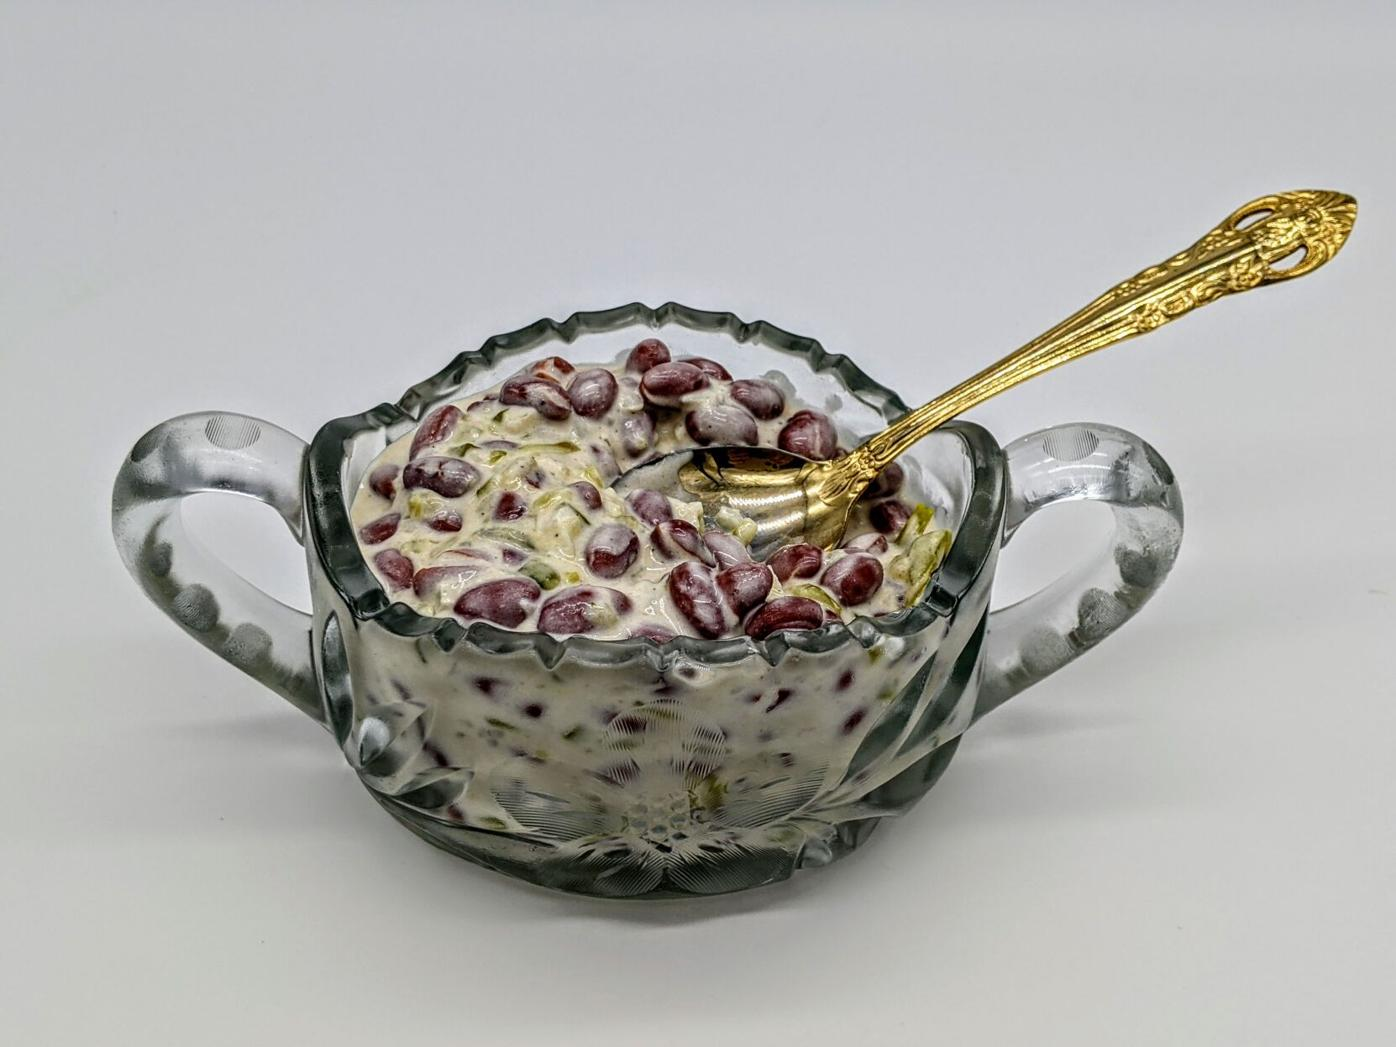 kidney bean salad in glass bowl with serving spoon